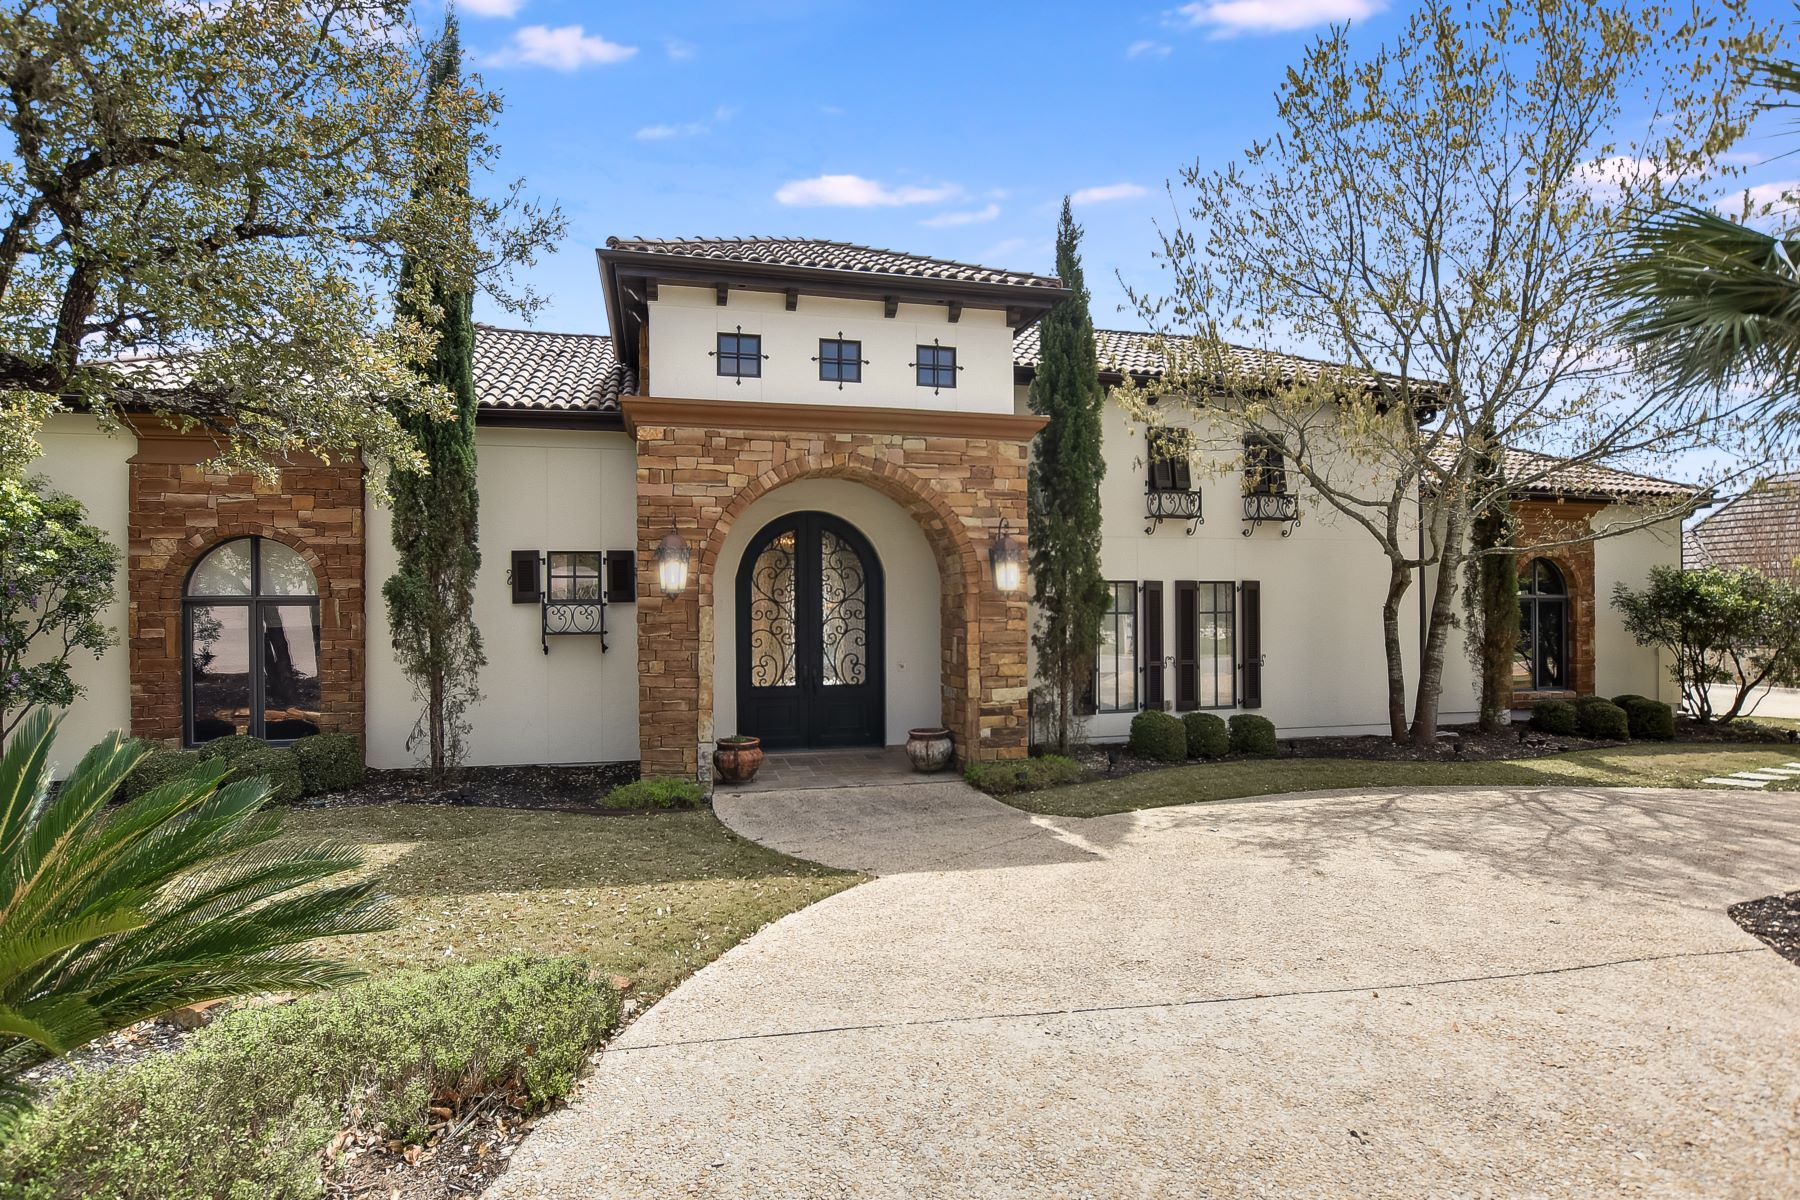 Single Family Home for Sale at Timeless Mediterranean Estate in The Dominion 16 Esquire San Antonio, Texas 78257 United States